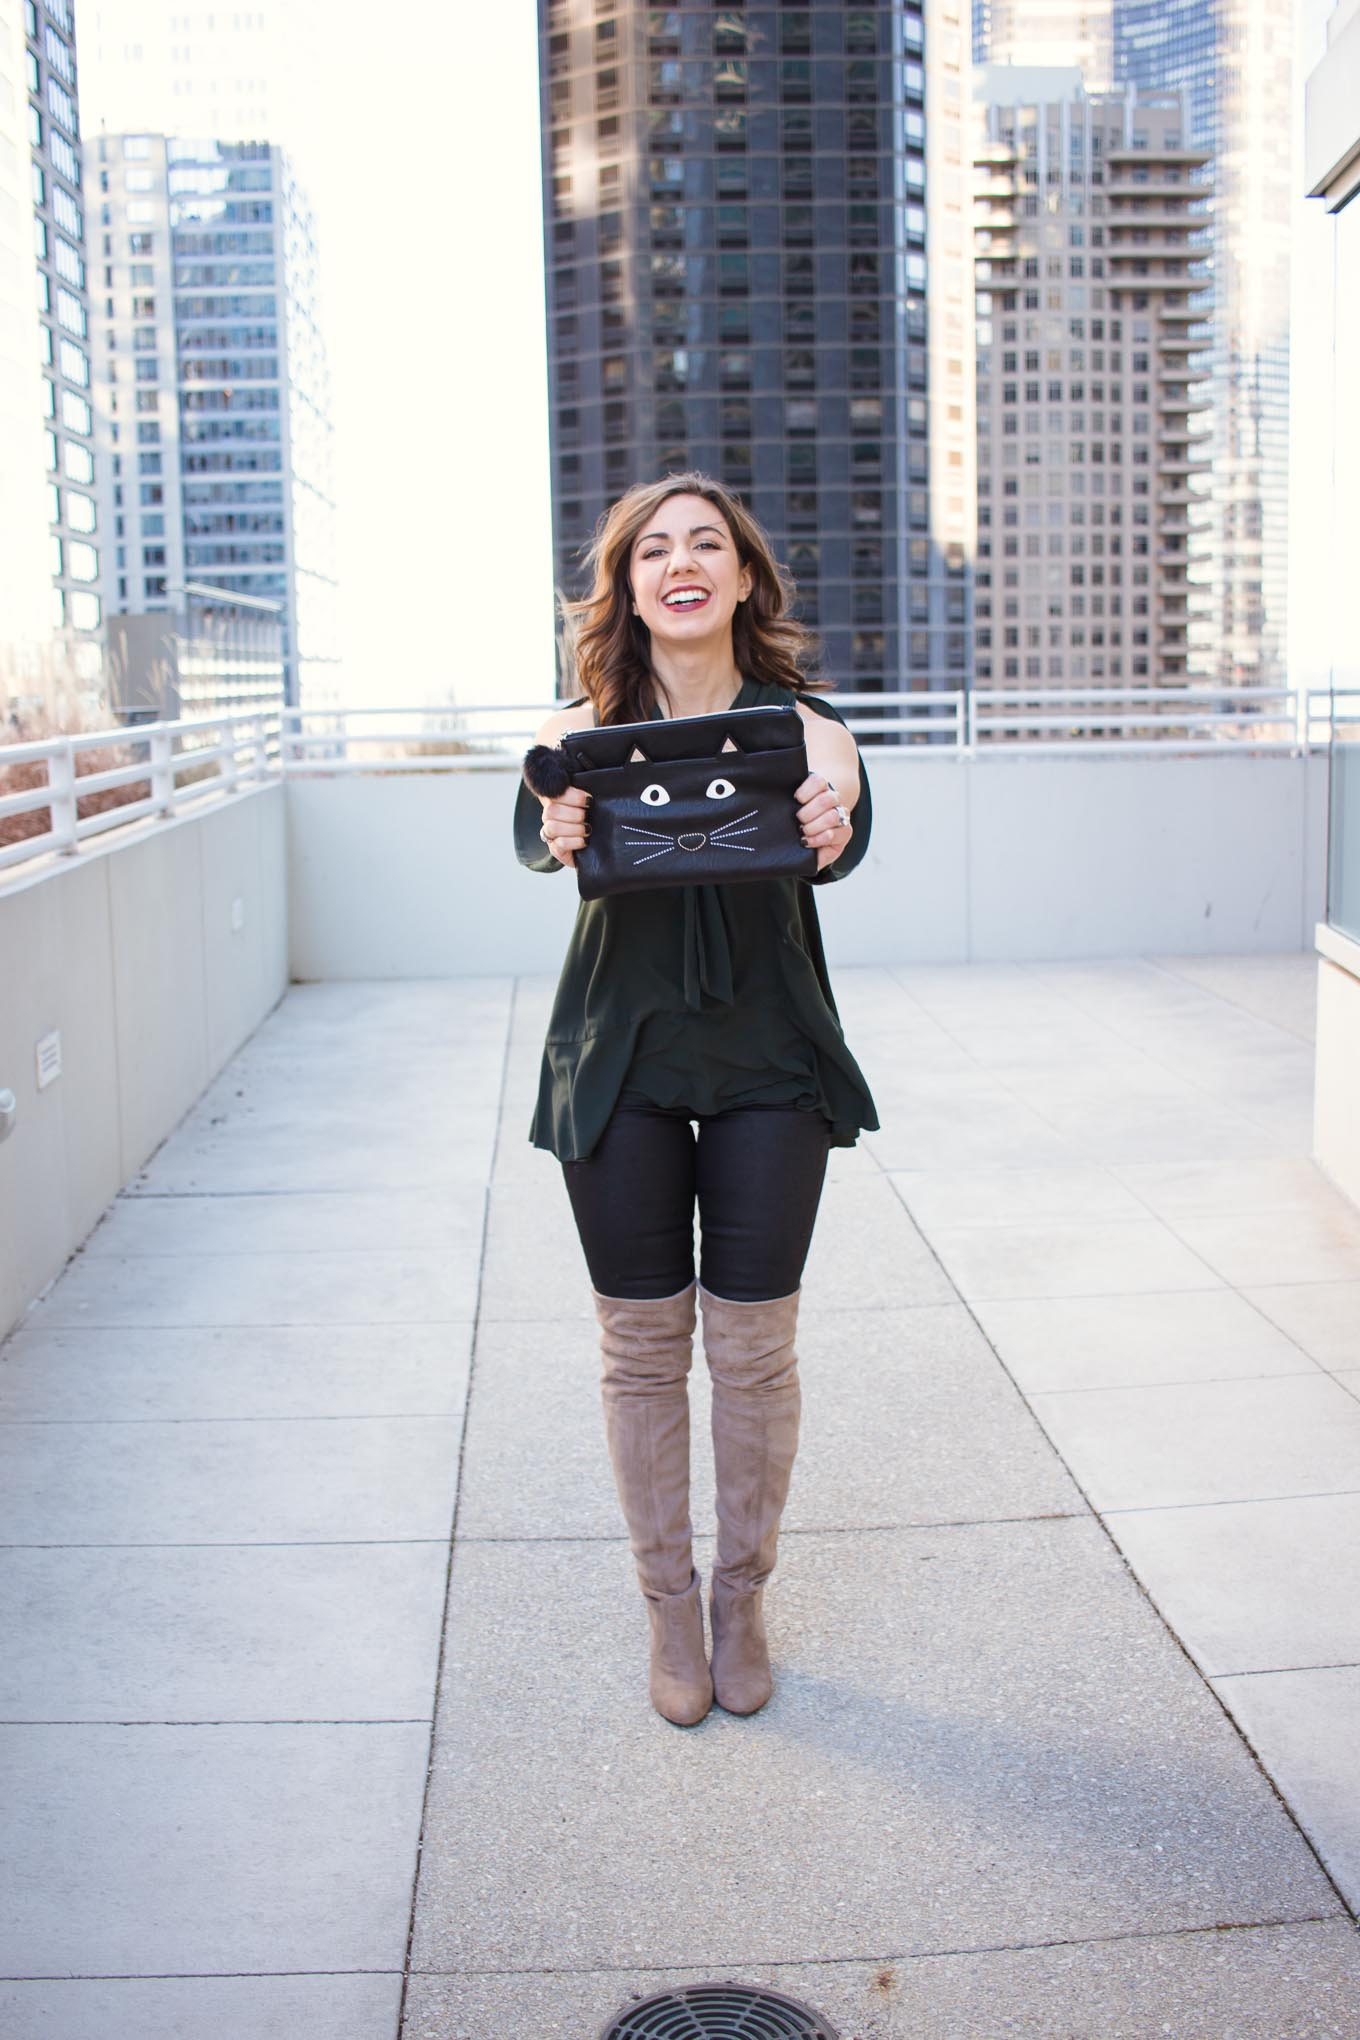 Lifestyle blogger Roxanne of Glass of Glam wearing a Le Tote green top, coated denim, cat clutch, and steve madden boots